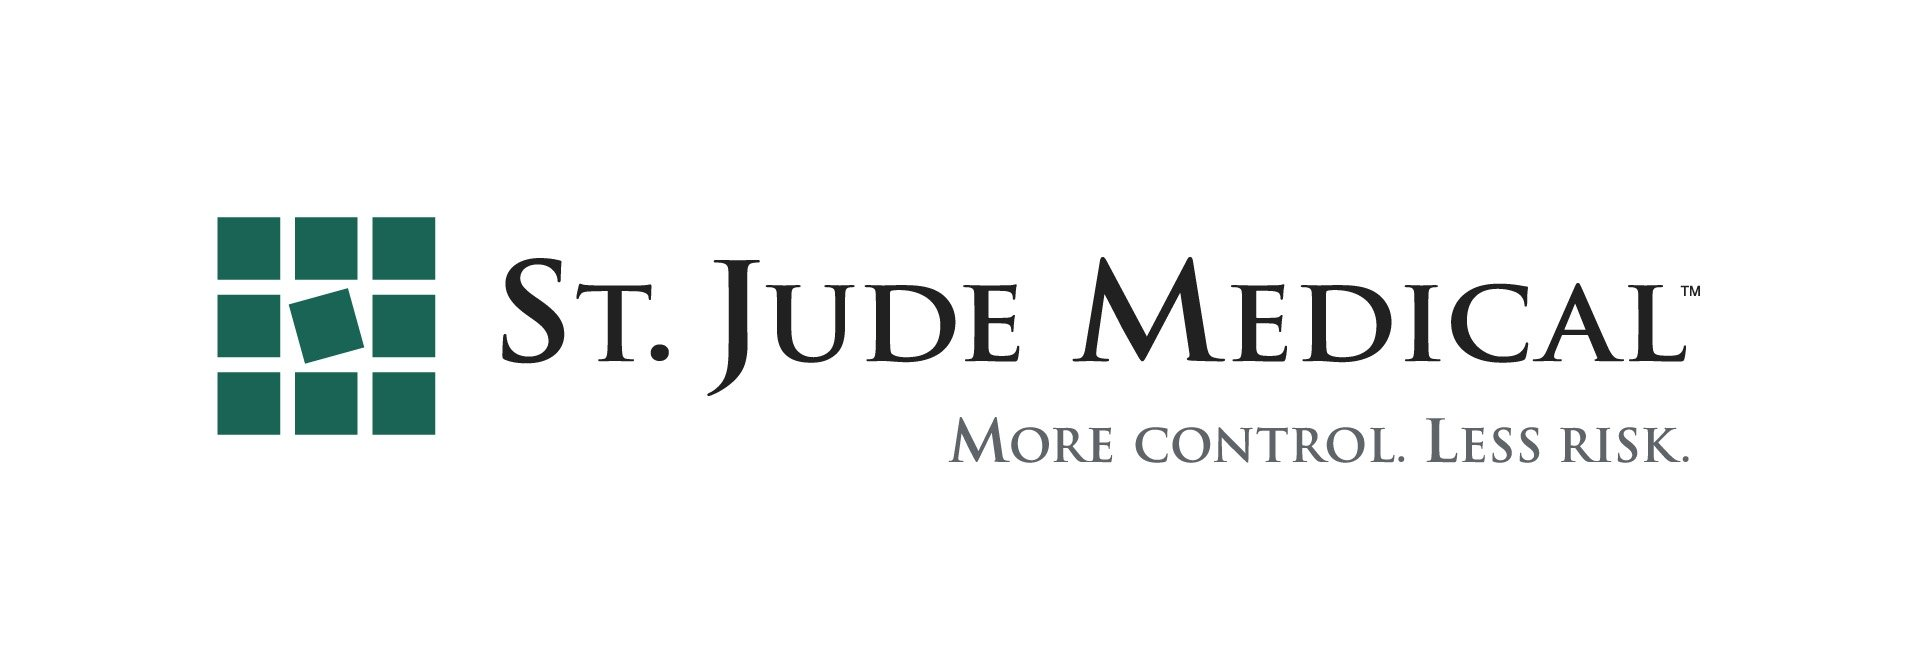 St. Jude Medical, Inc. logo